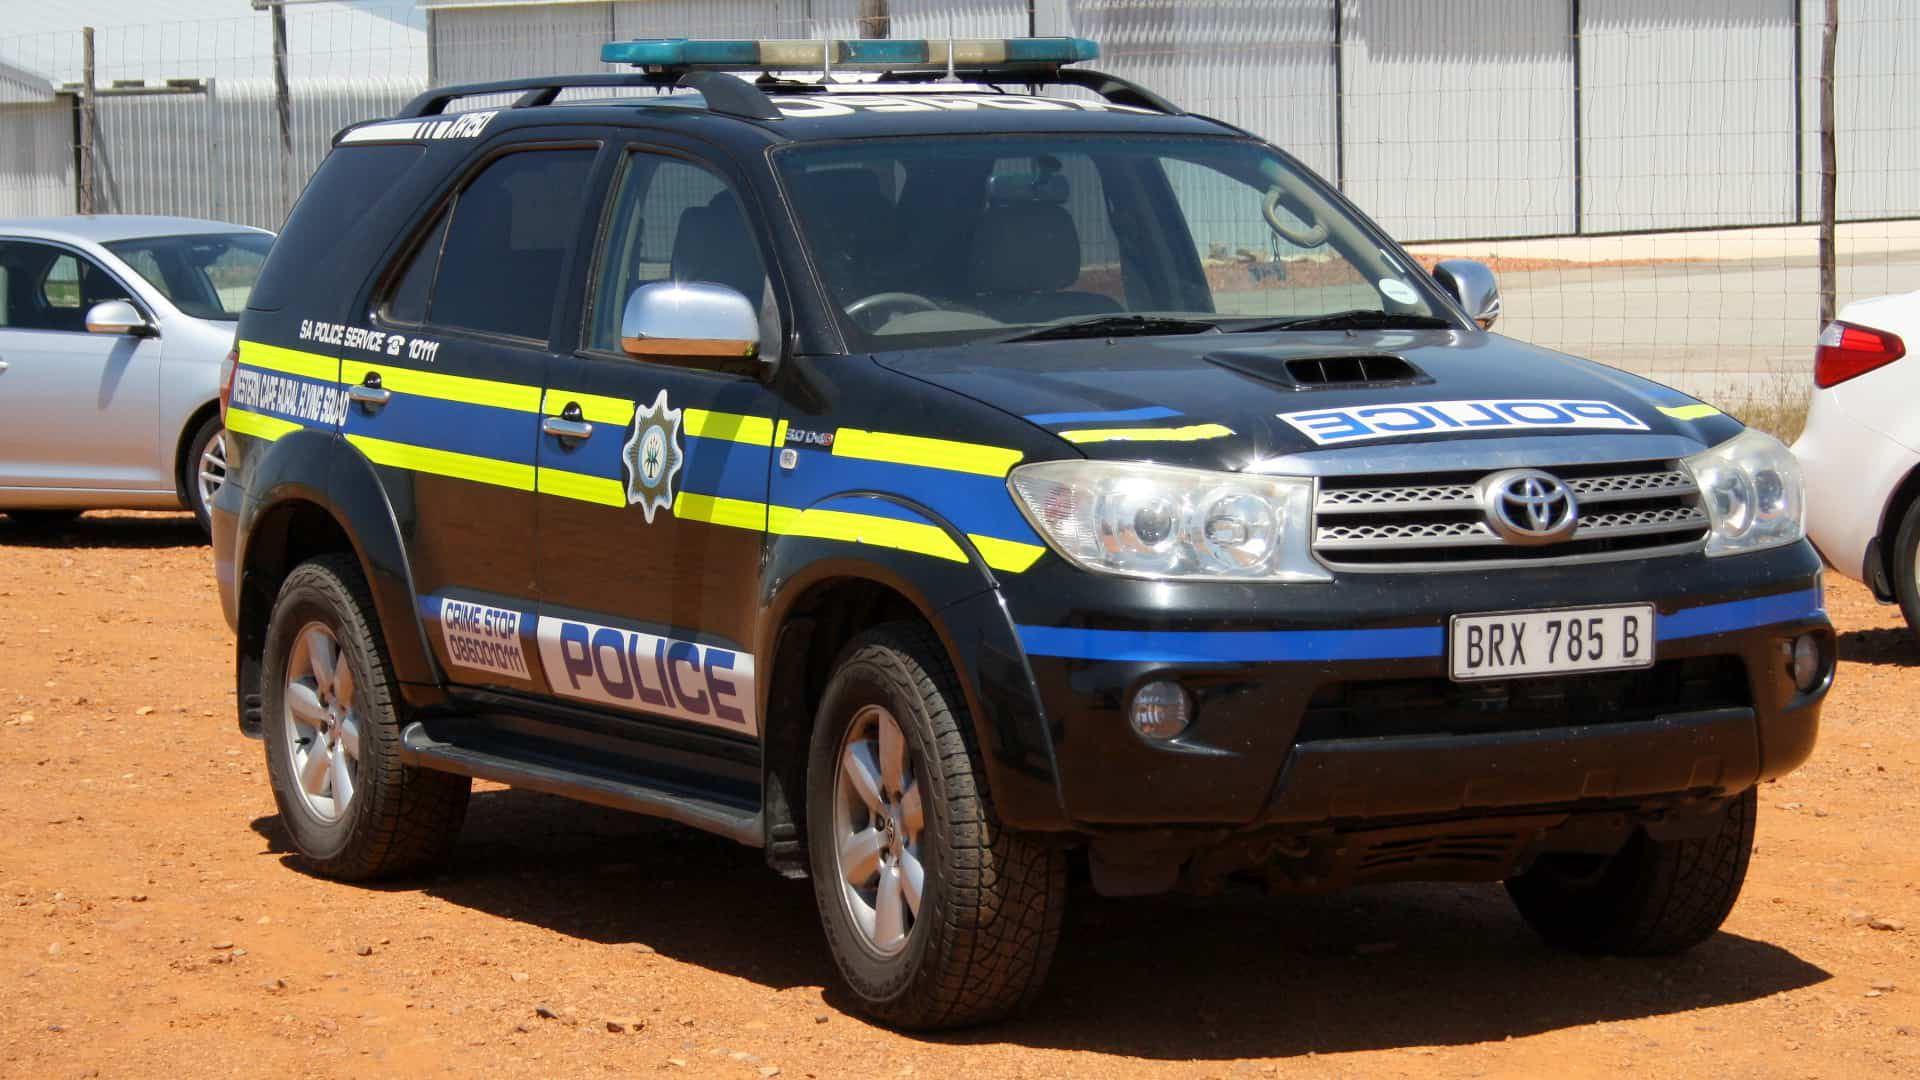 54 percent non-functional SAPS flying squad vehicles could have been used to save lives, businesses during looting unrest